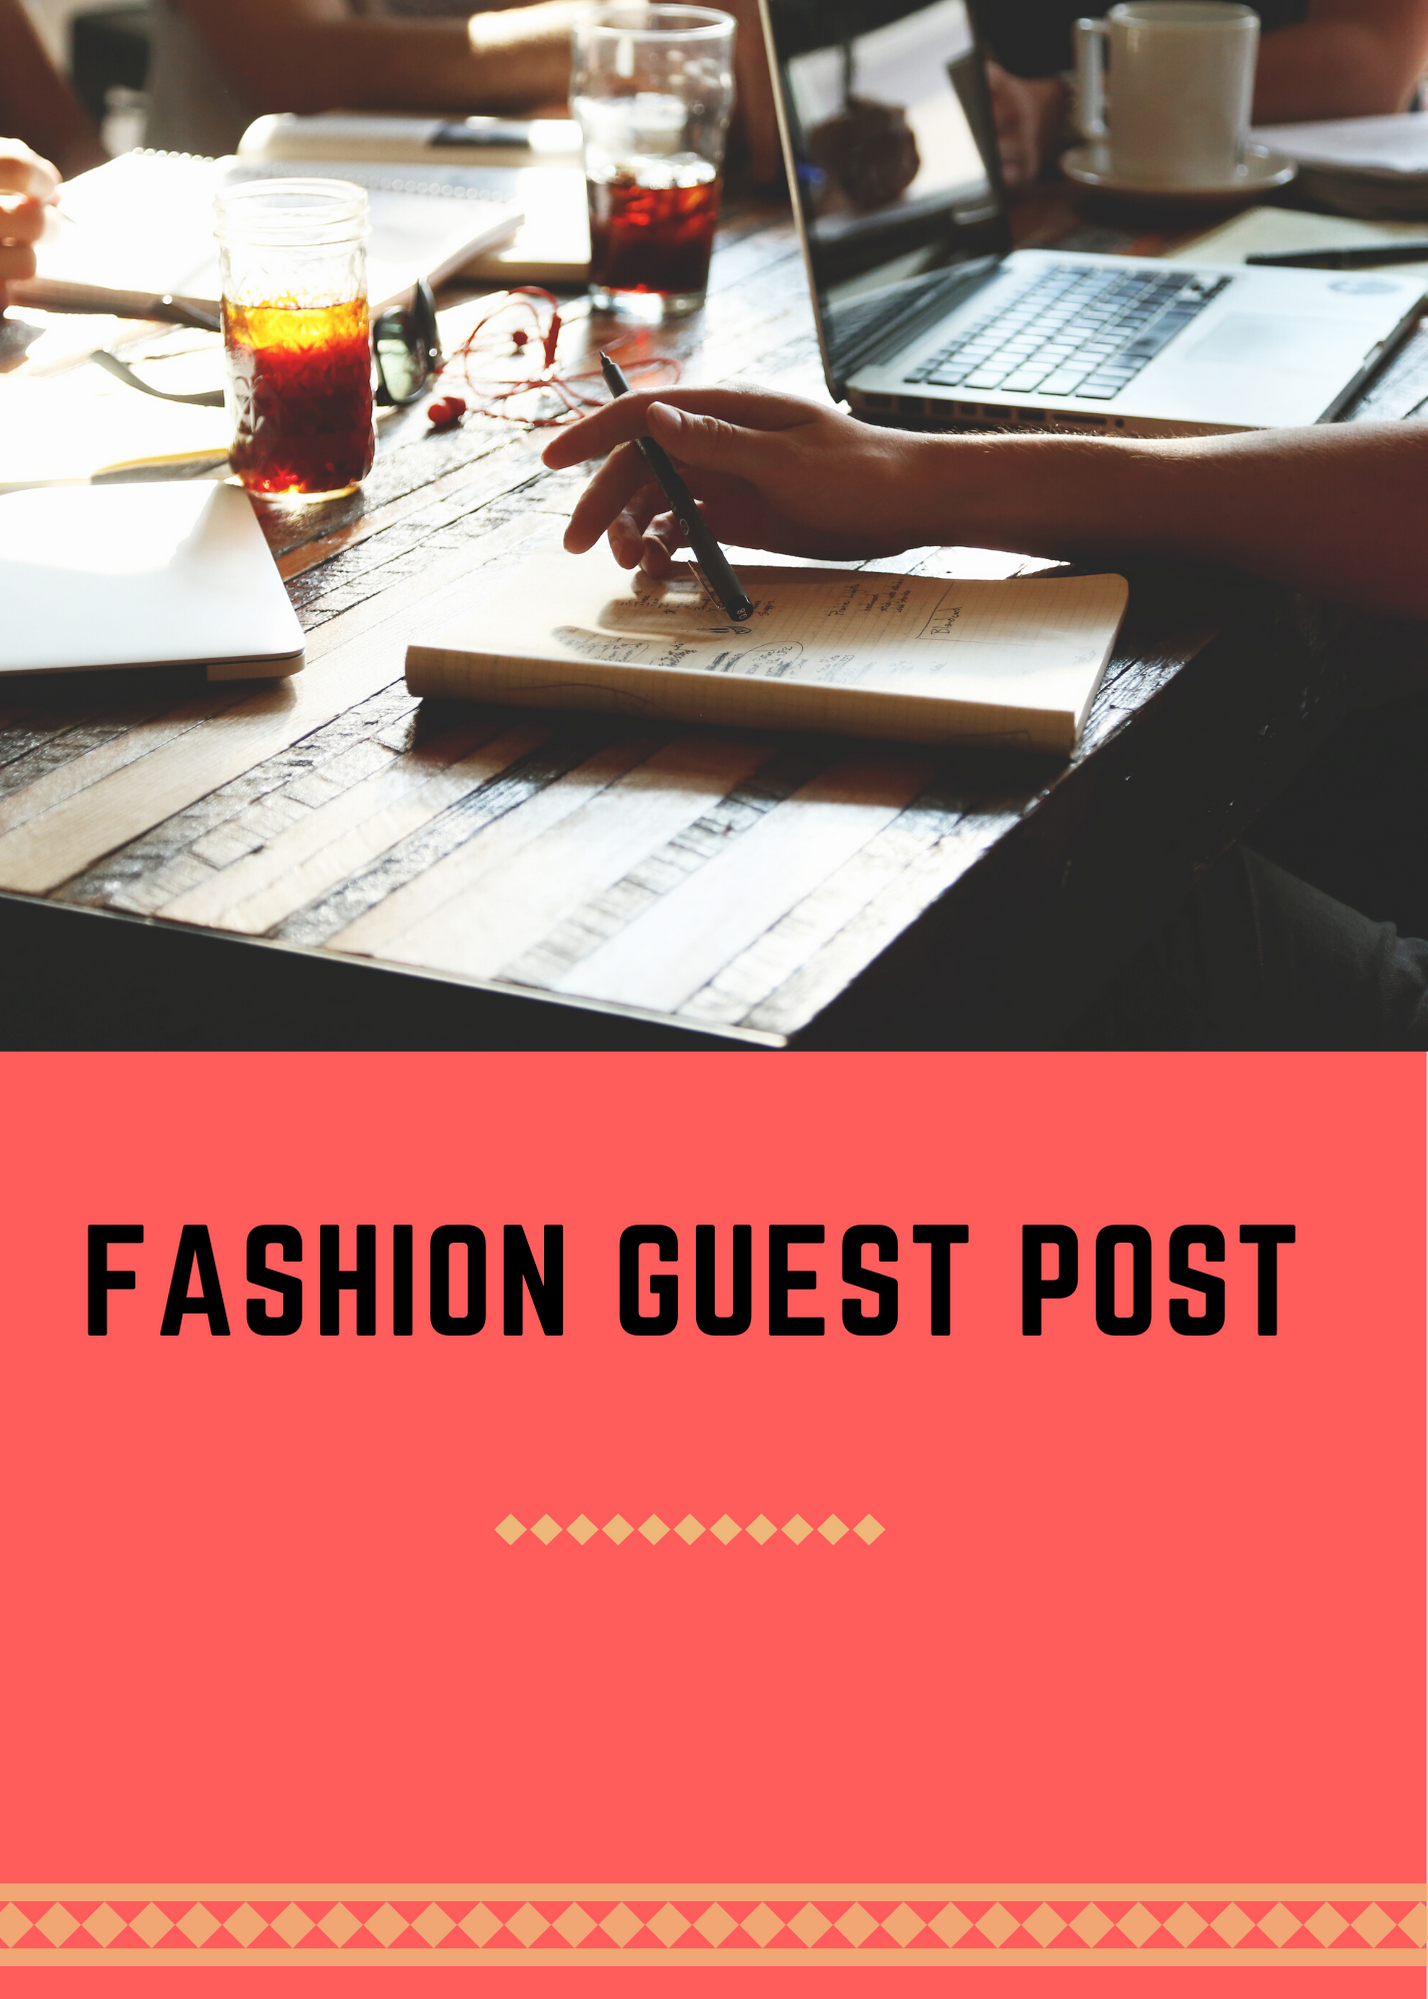 Get high quality guest post on business products